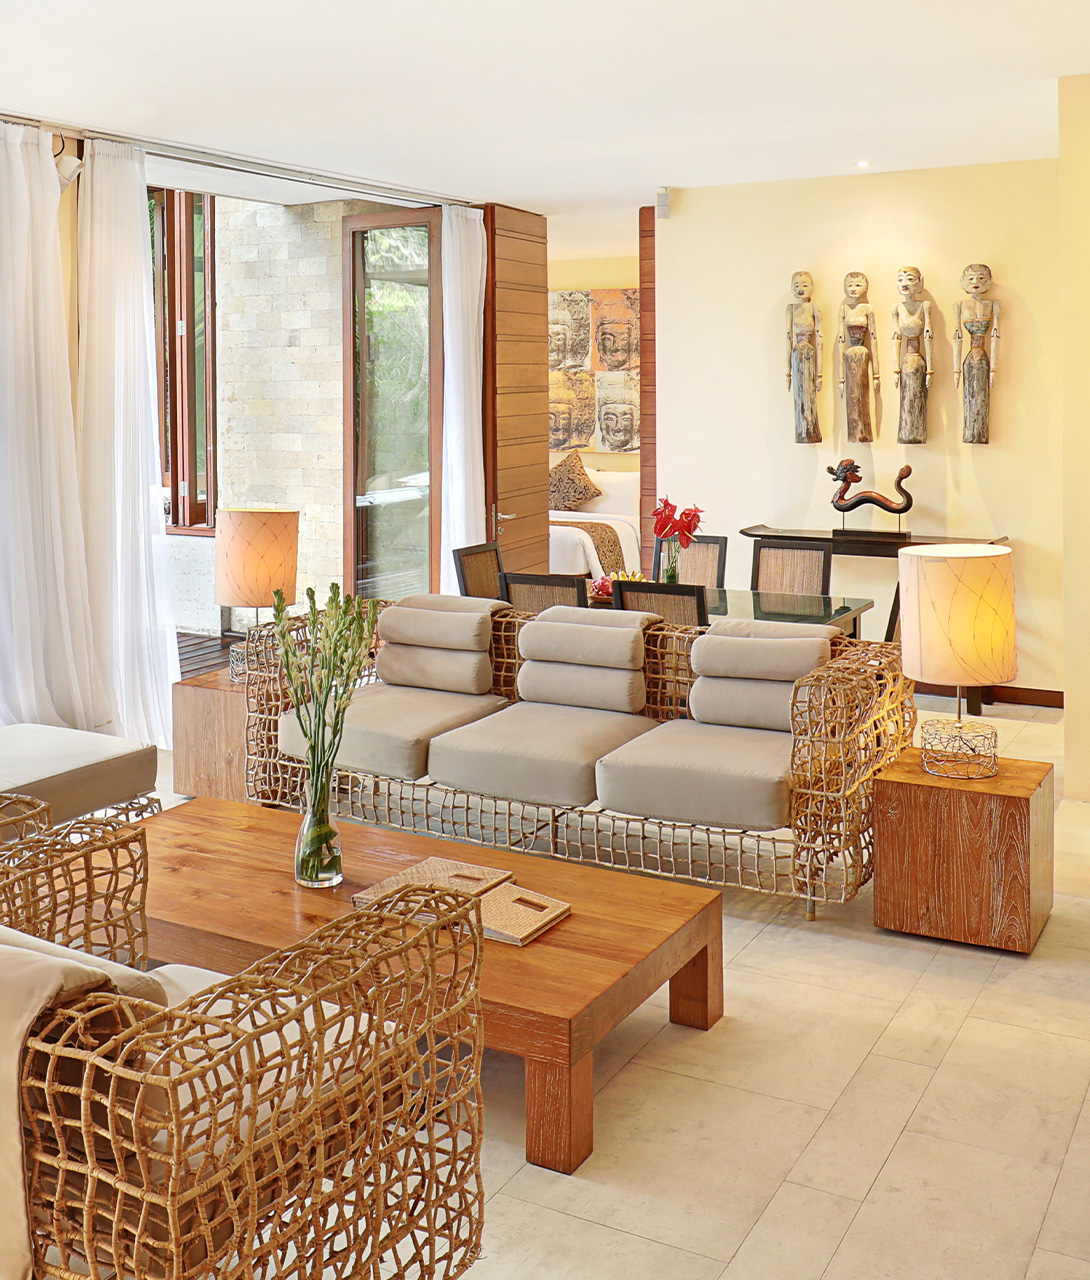 The Elysian Boutique Villa Hotel Chairs in Bali